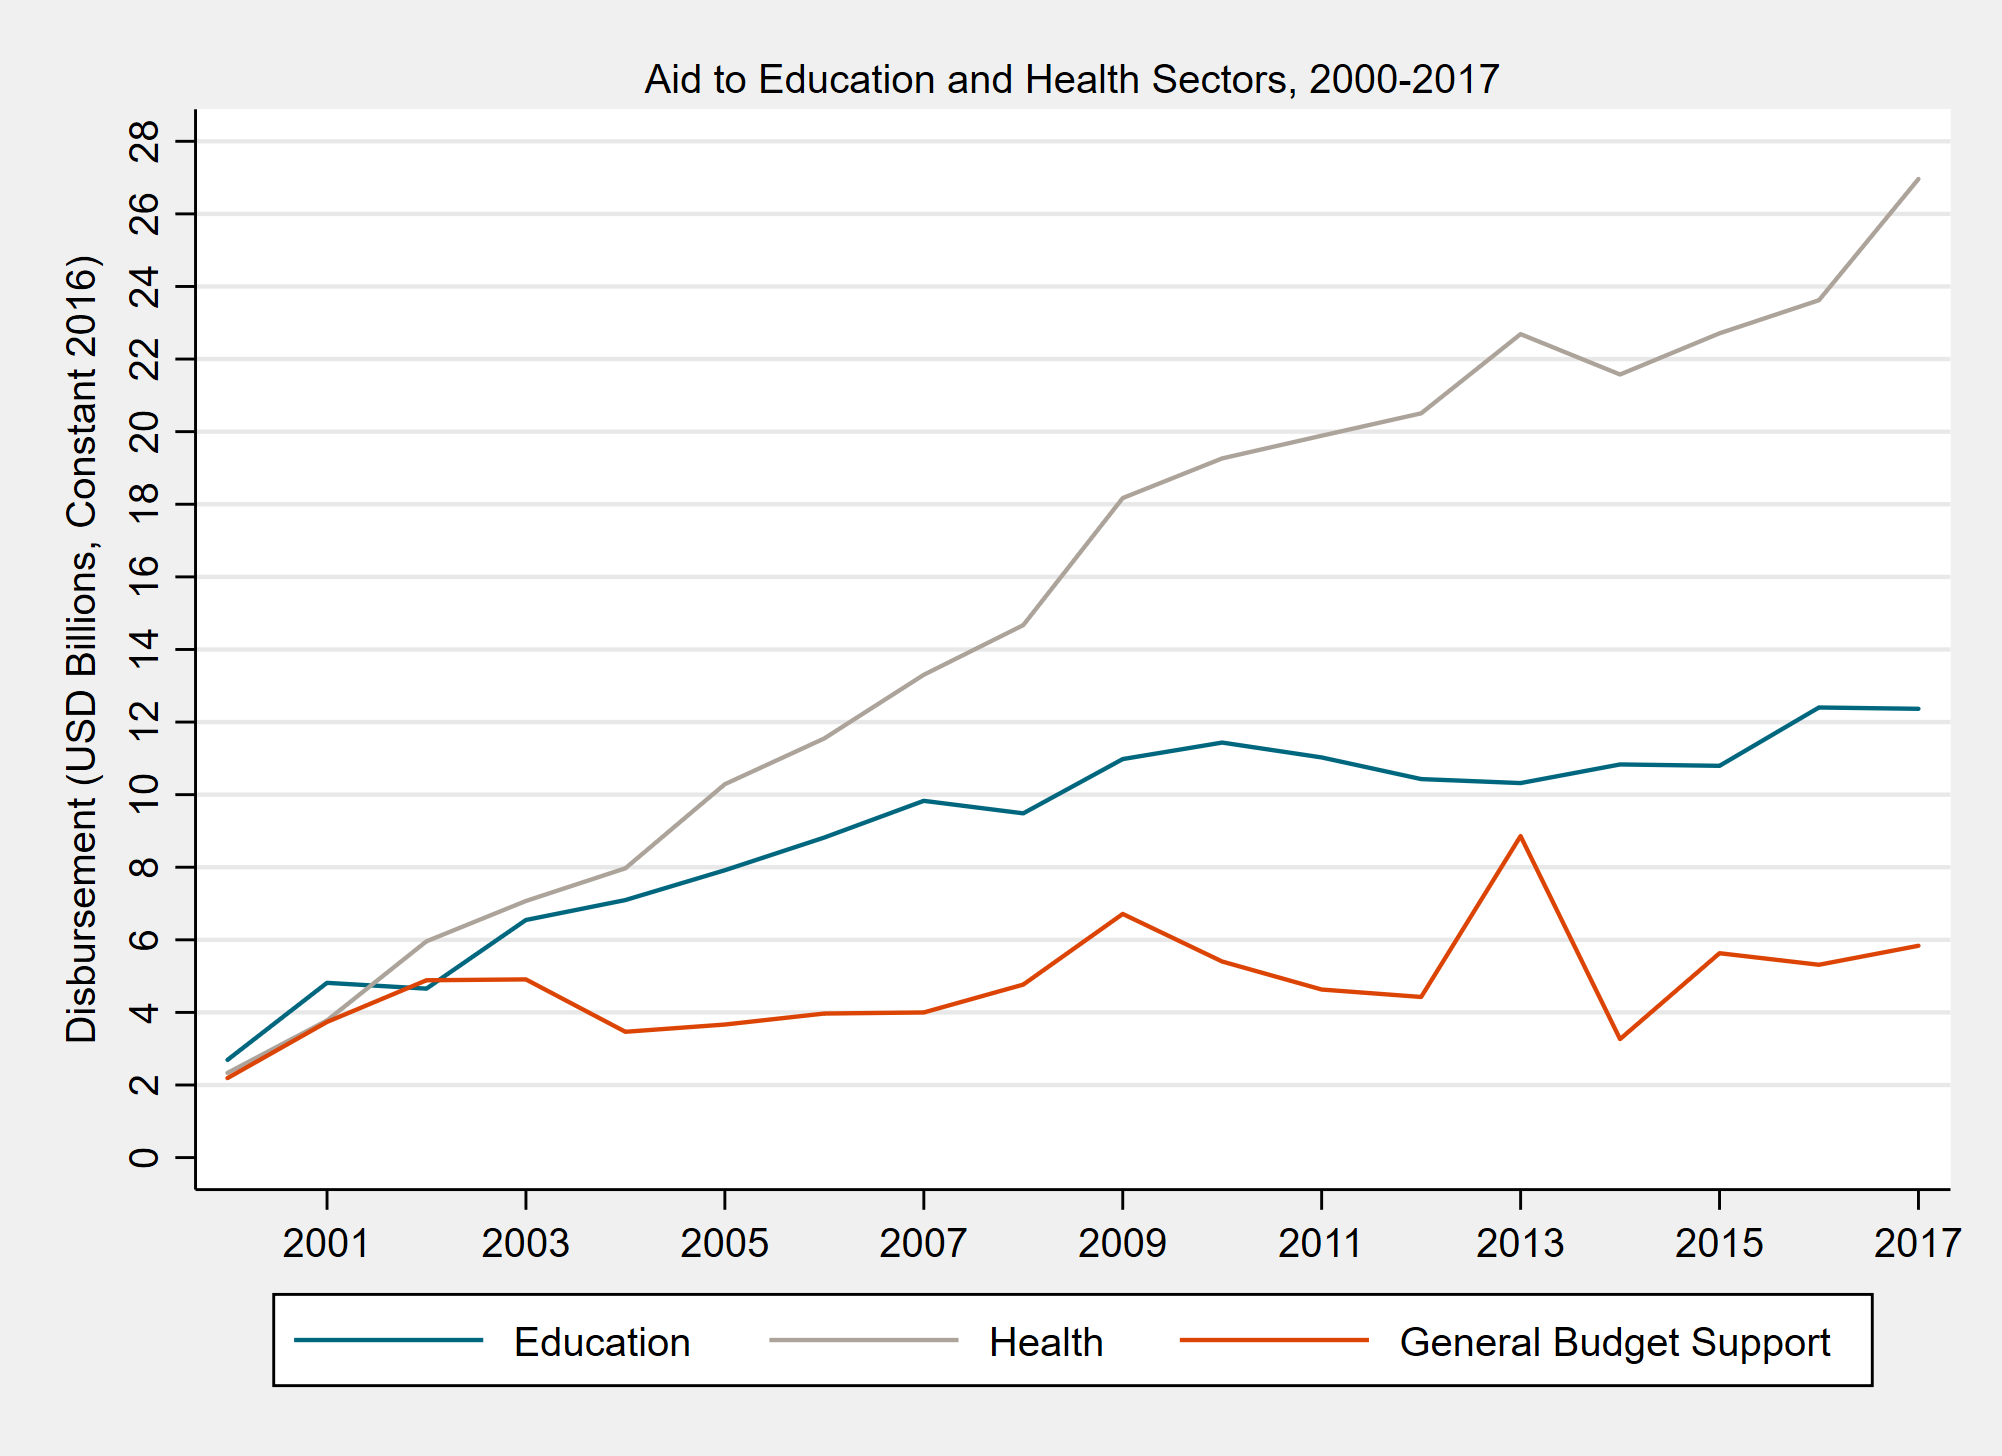 Aid to education has increased but has stagnated.